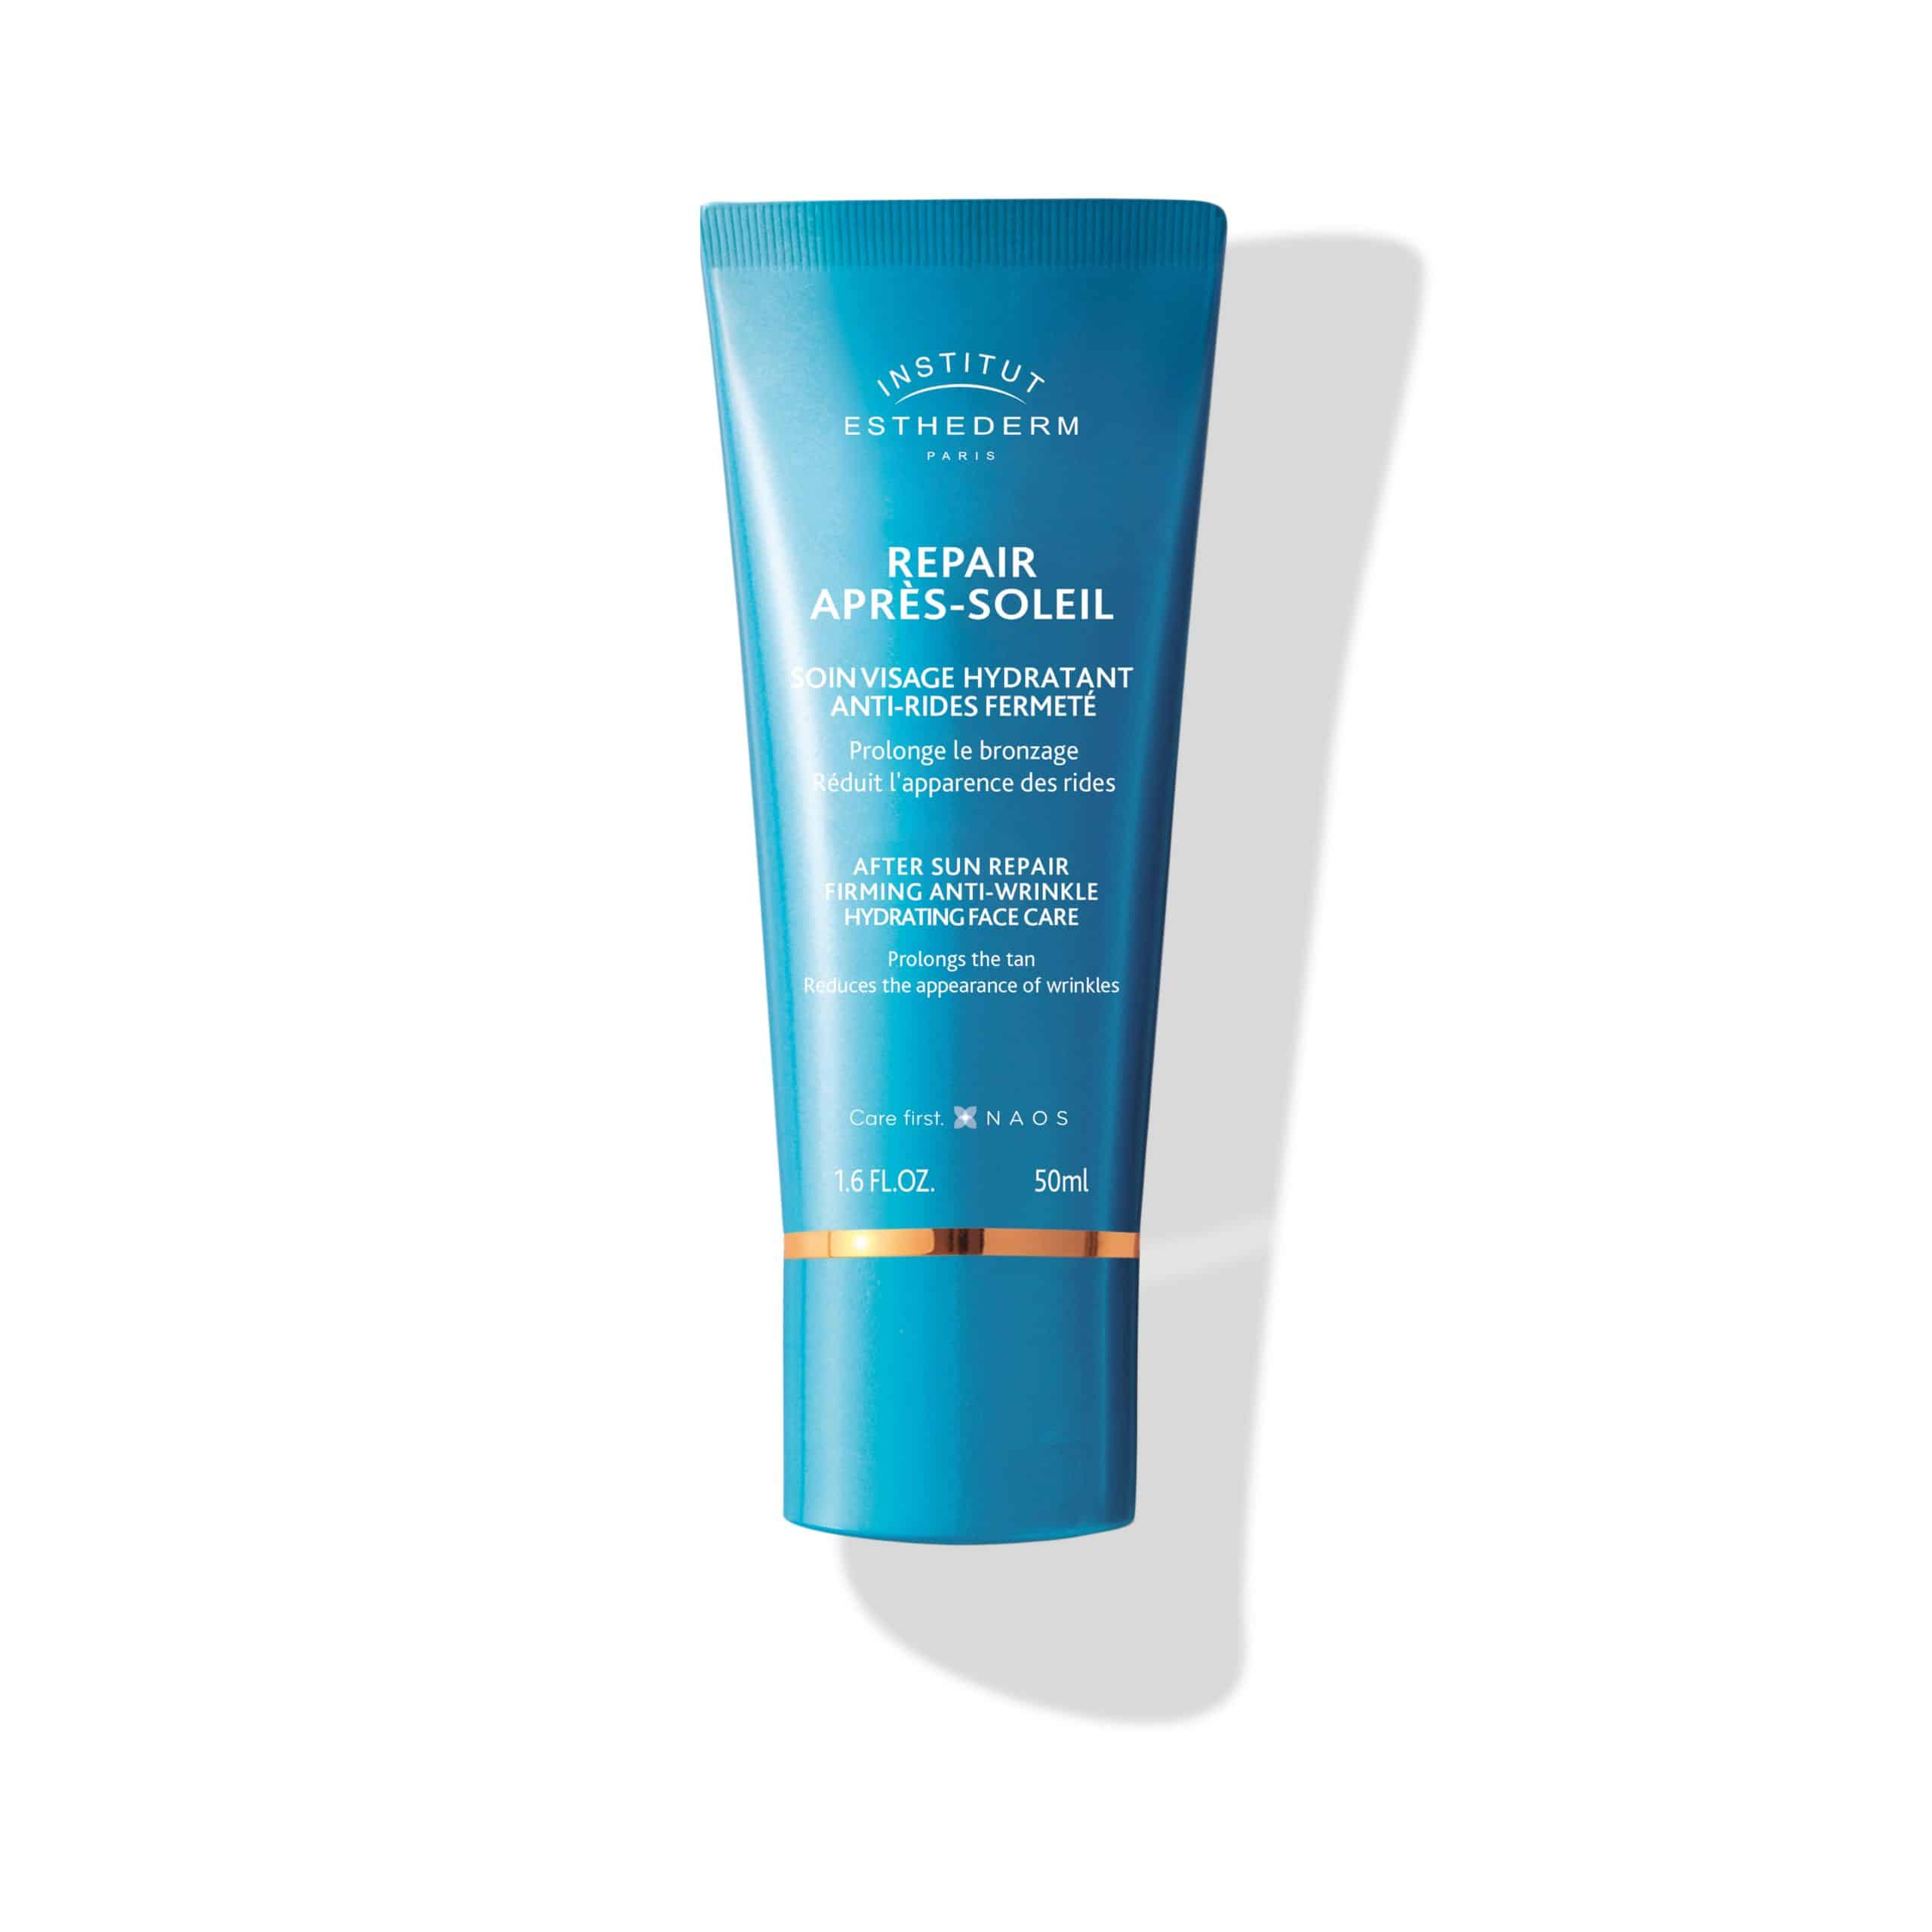 After-Sun Repair – Firming Anti-Wrinkles Face Care